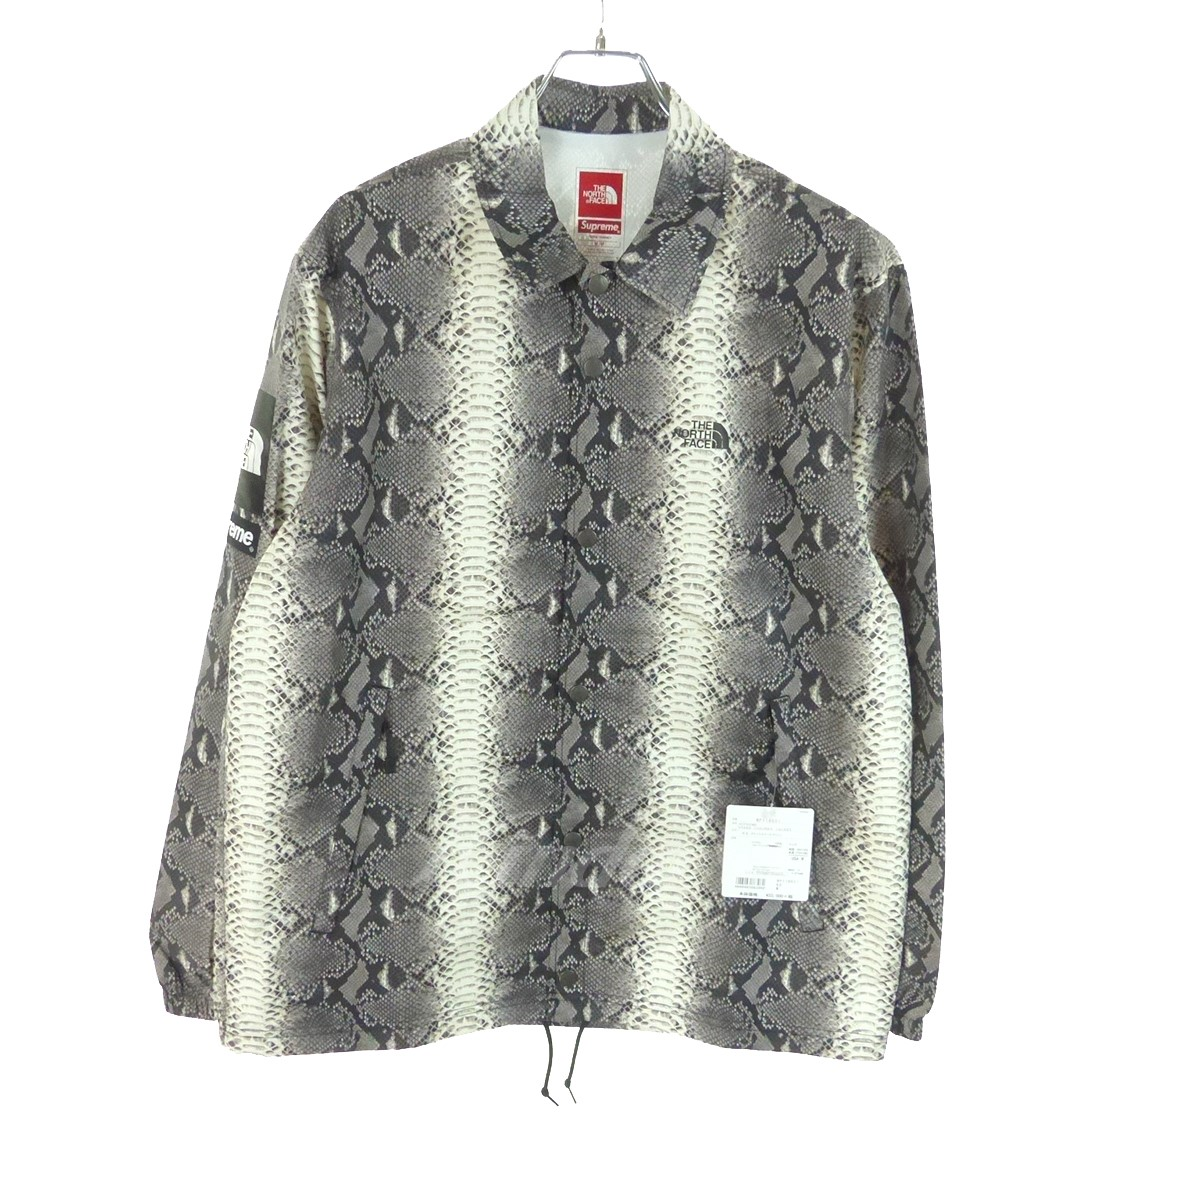 b31d3deb10ae38 SUPREME X THE NORTH FACE coach jacket 18SS Snakeskin Taped Seam Coaches  Jacket gray size  medium